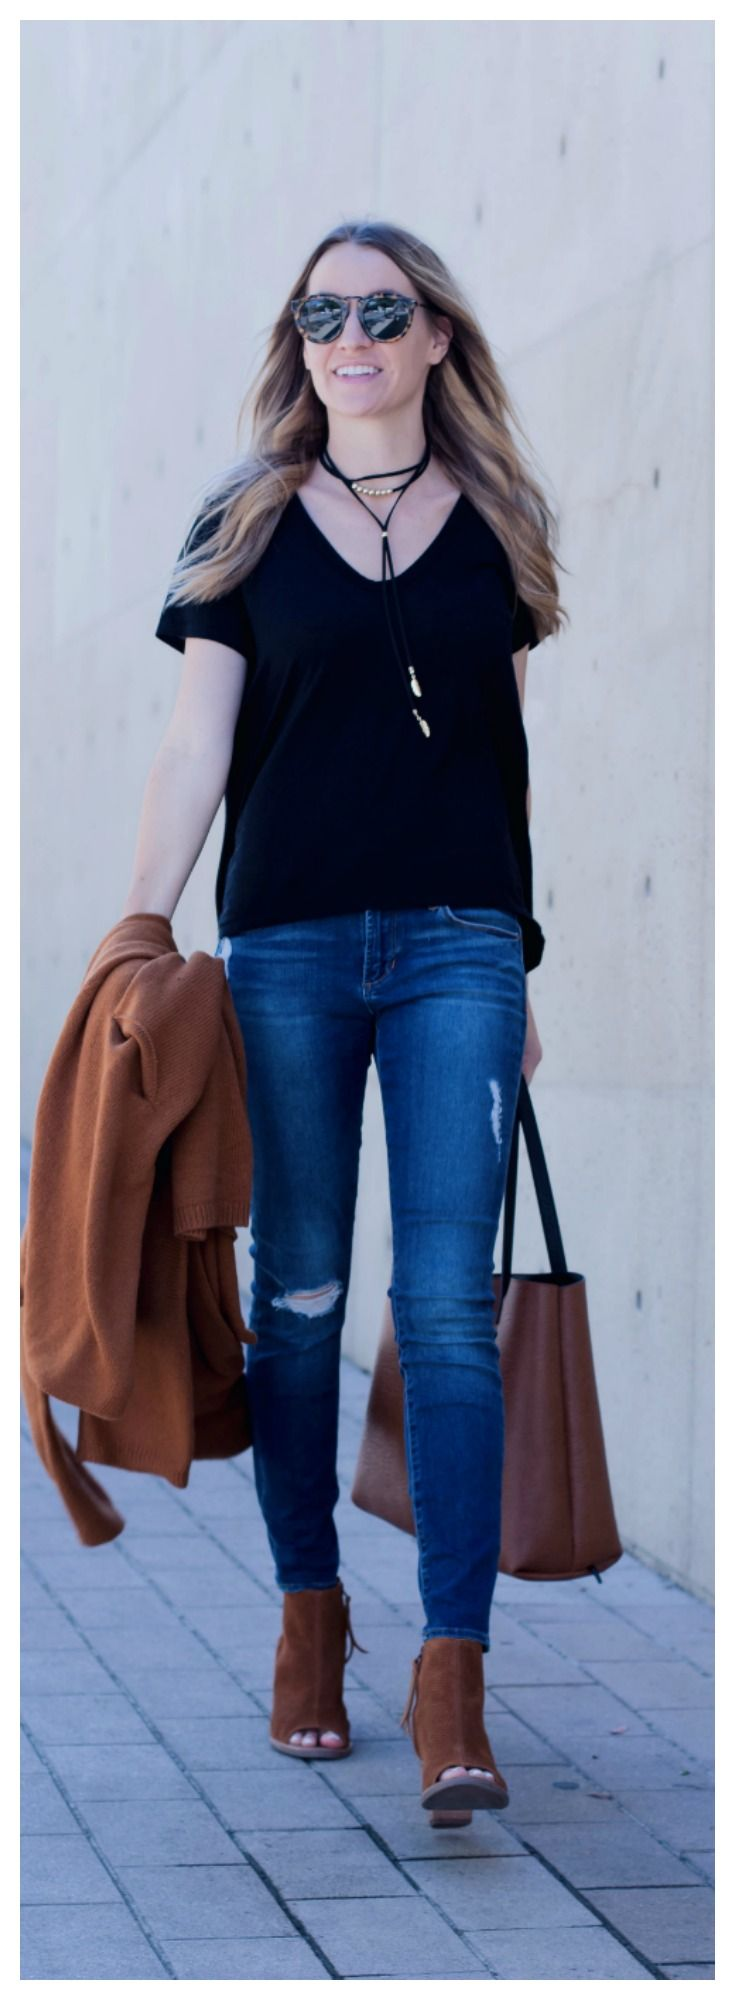 Distressed Jeans, Black Tee, Long Necklace, and Caramel Accessories// The Perfect Fall Look